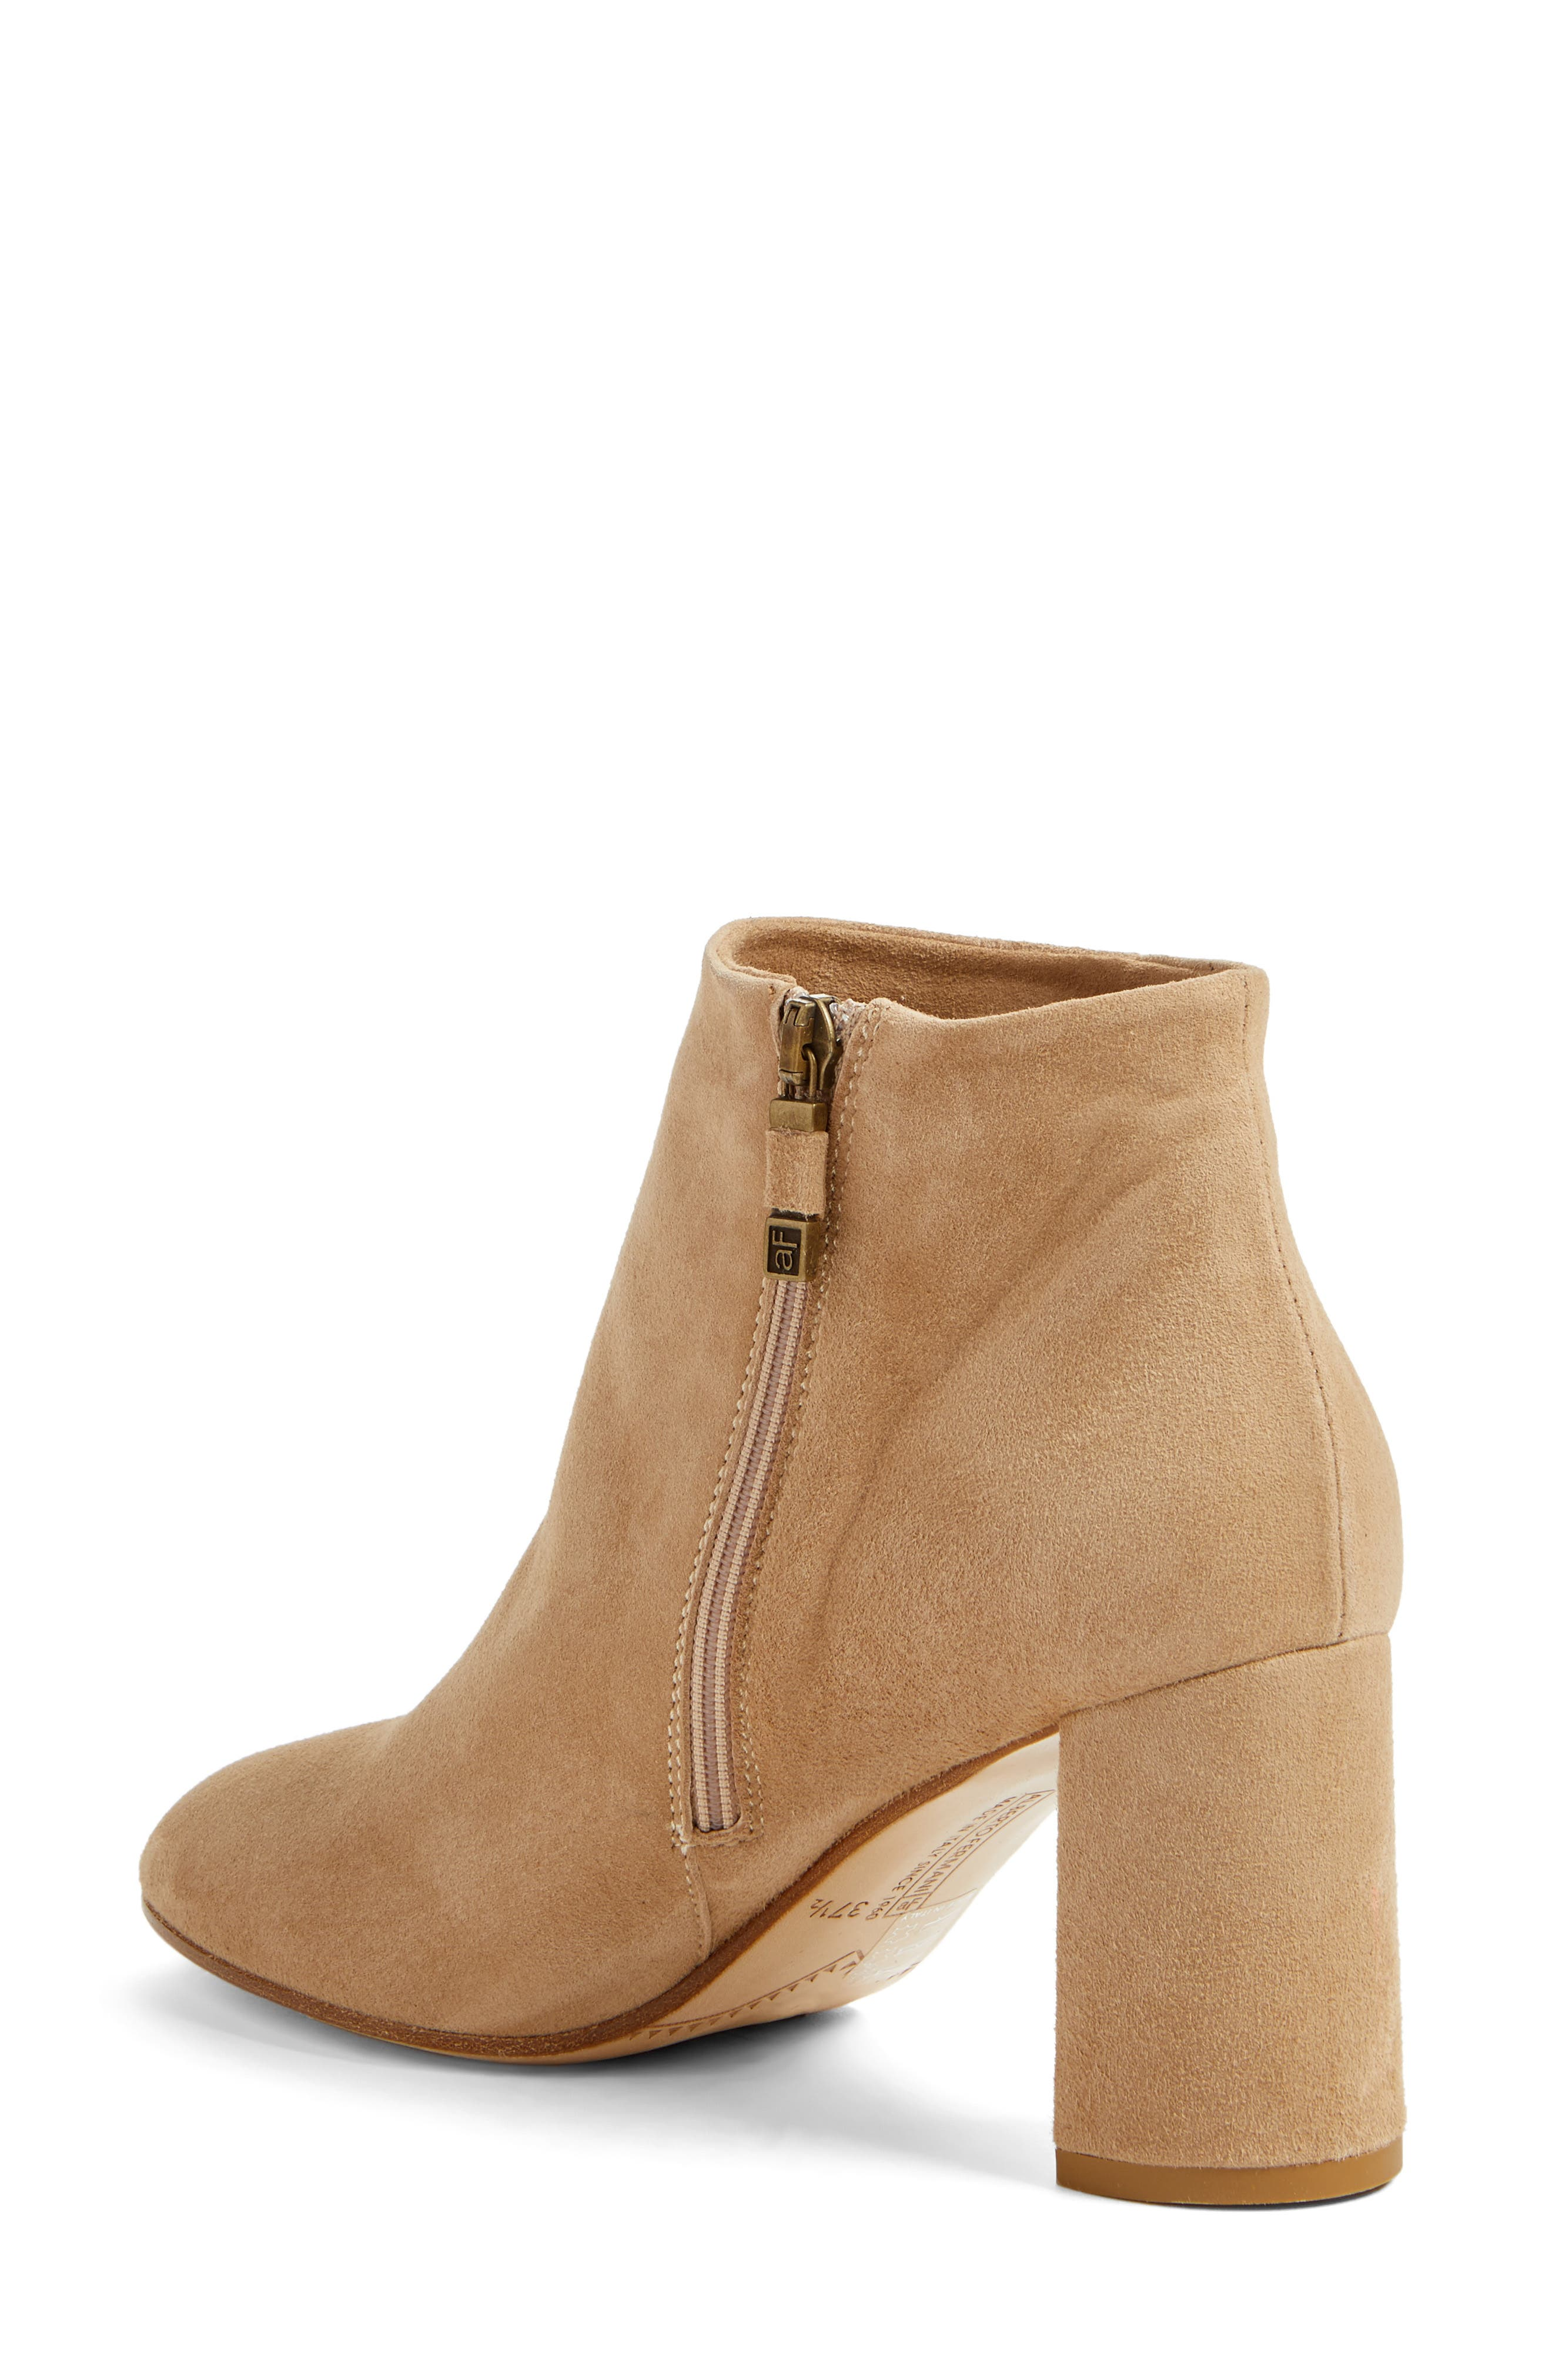 Aster Bootie,                             Alternate thumbnail 2, color,                             250